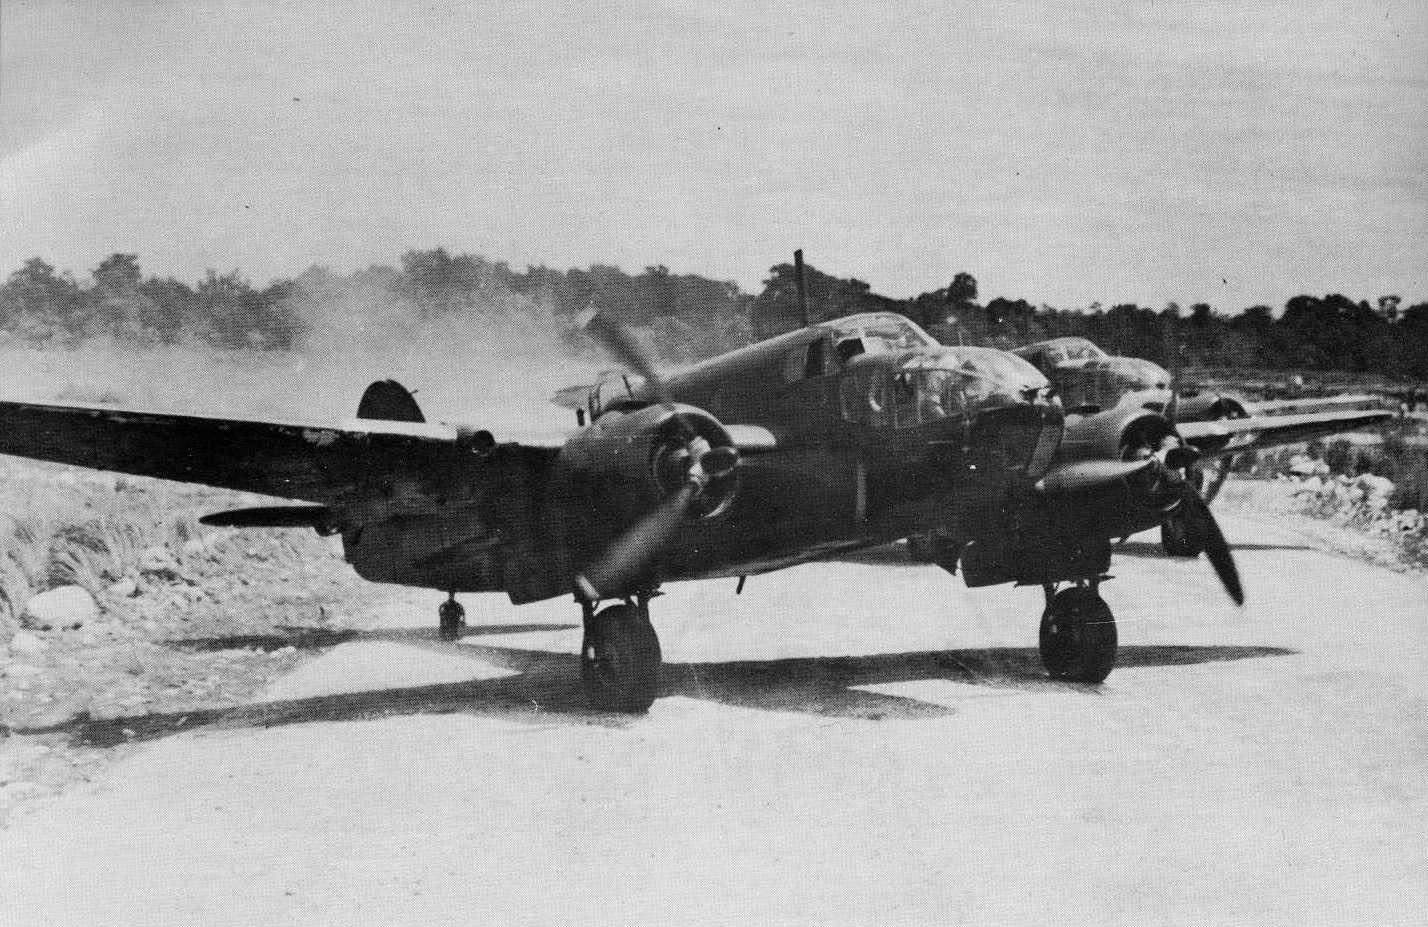 Bristol Beaufort RAAF 100Sqn taxing New Guinea 01